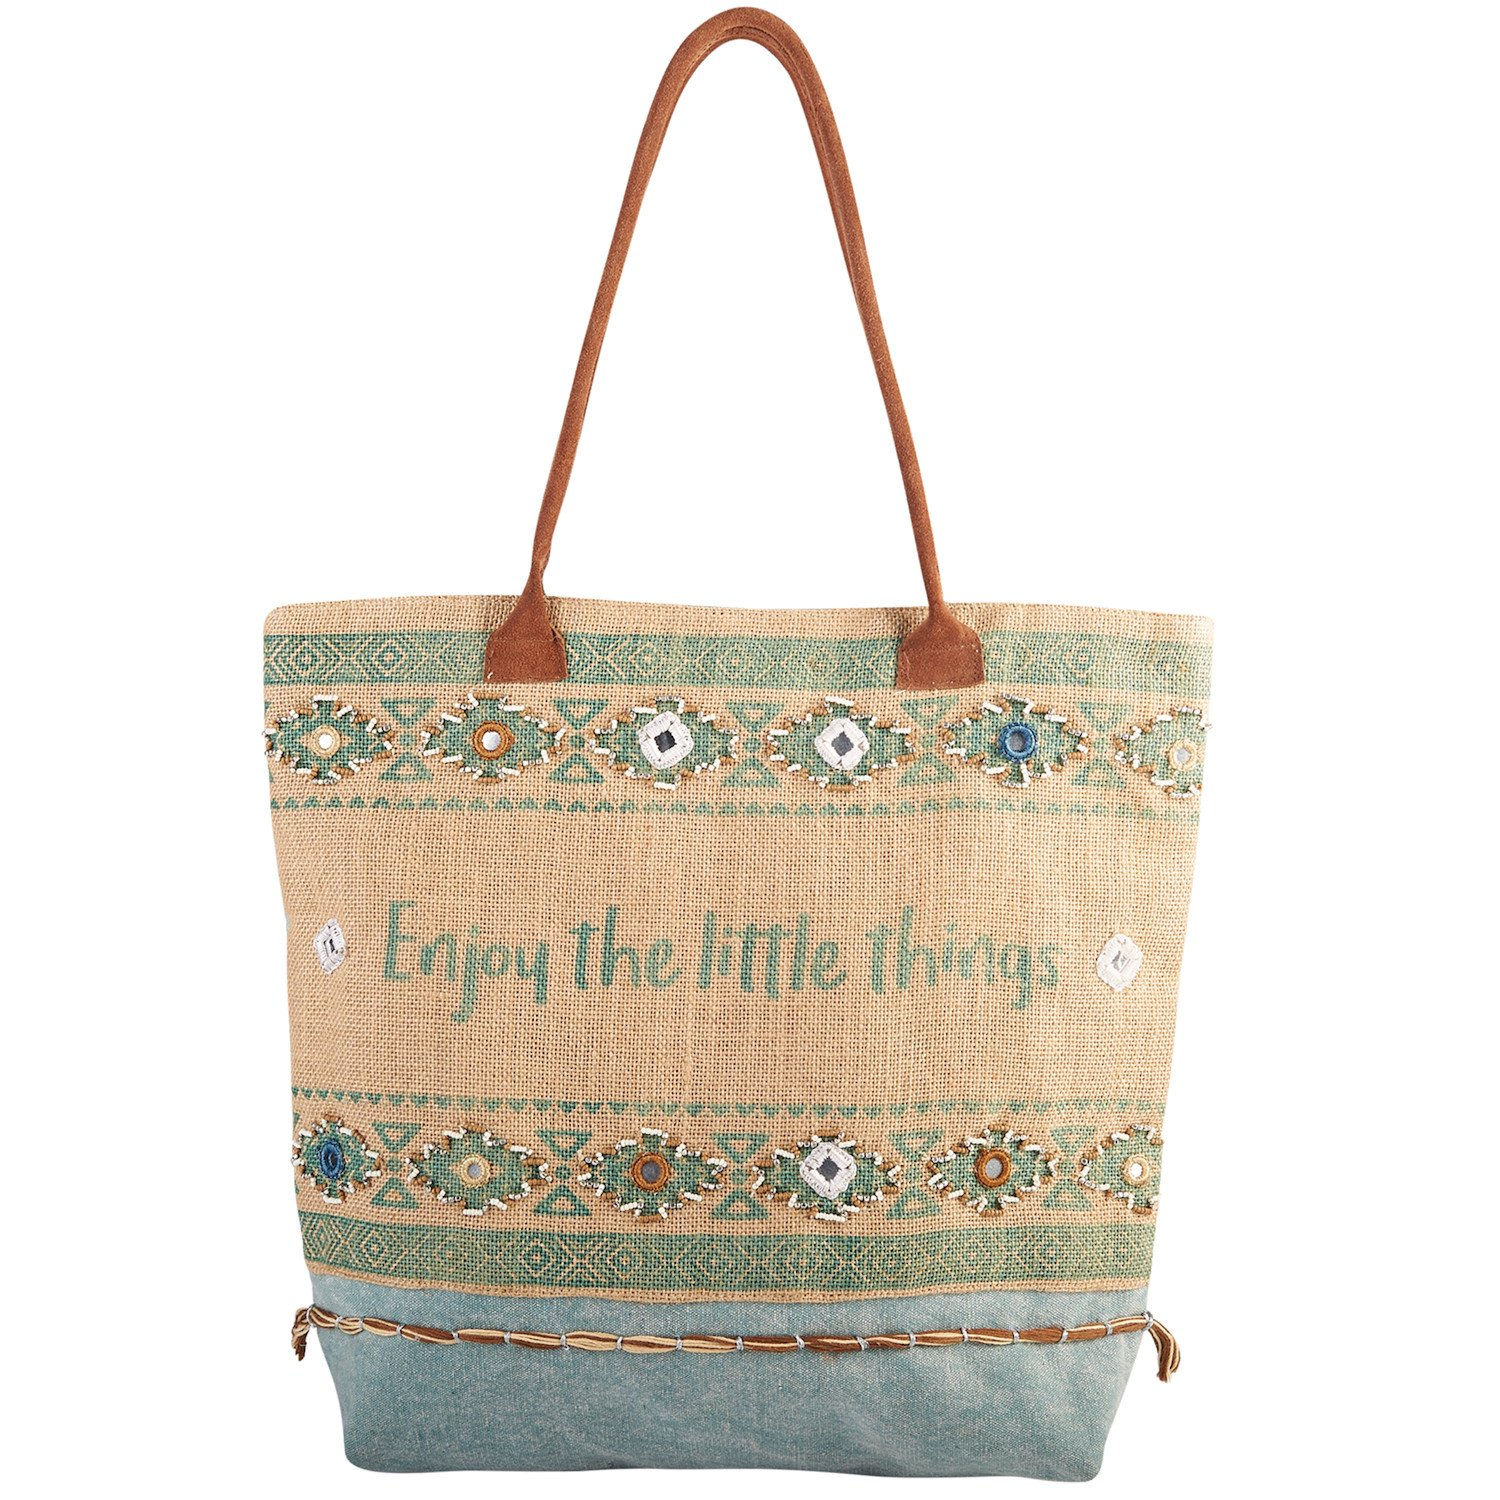 Catalog Classics Enjoy the Little Things Tote Bag - Embroidered Beaded Cotton Jute Purse